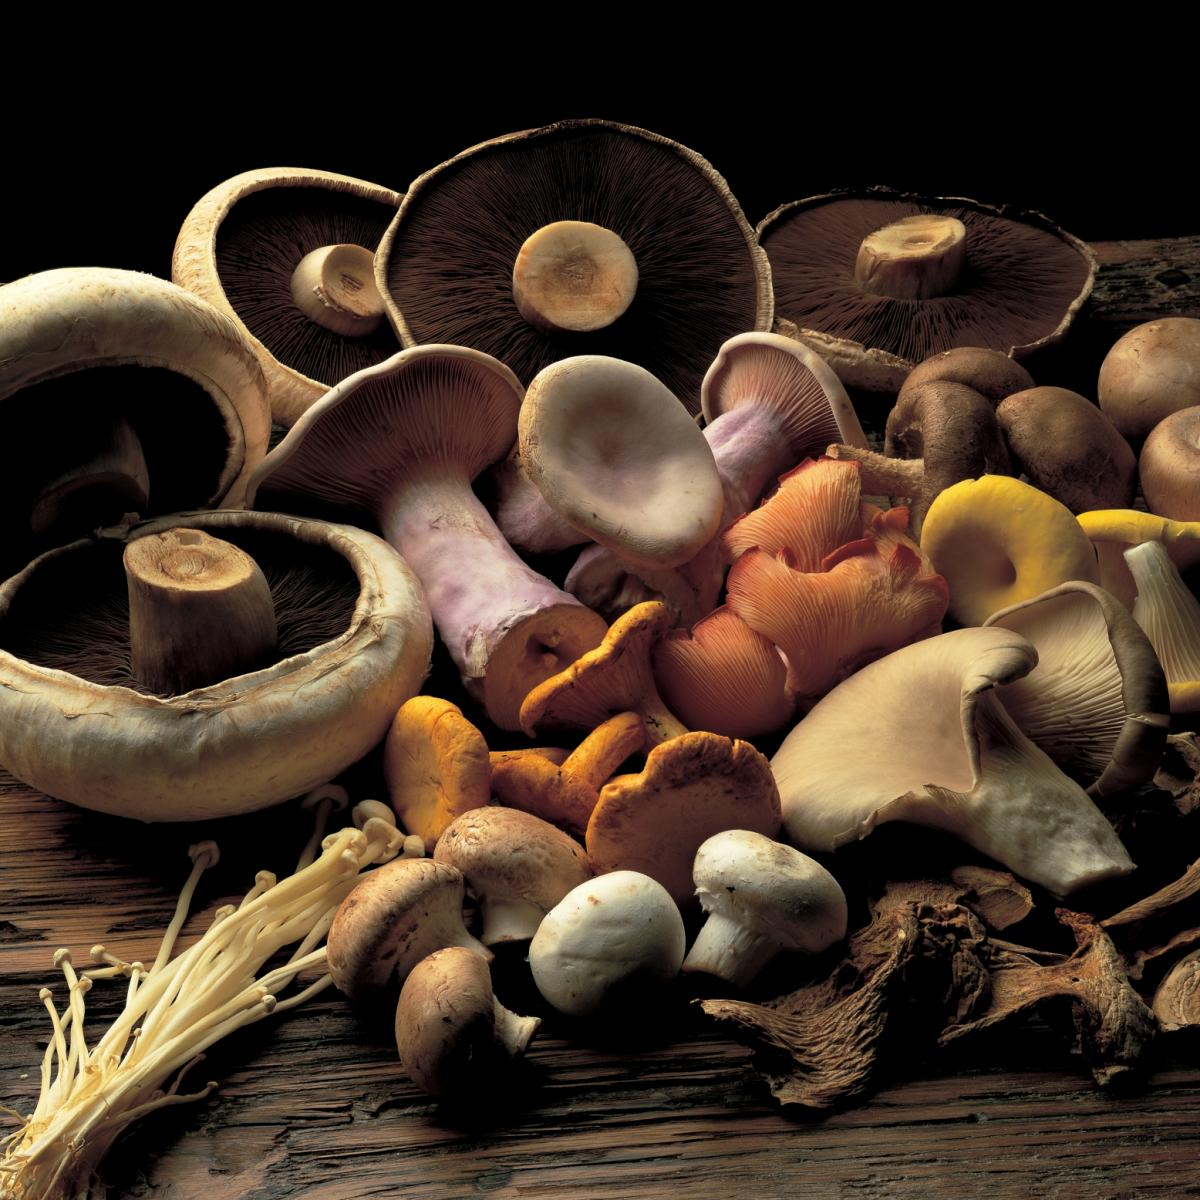 Ingredient soup mushrooms